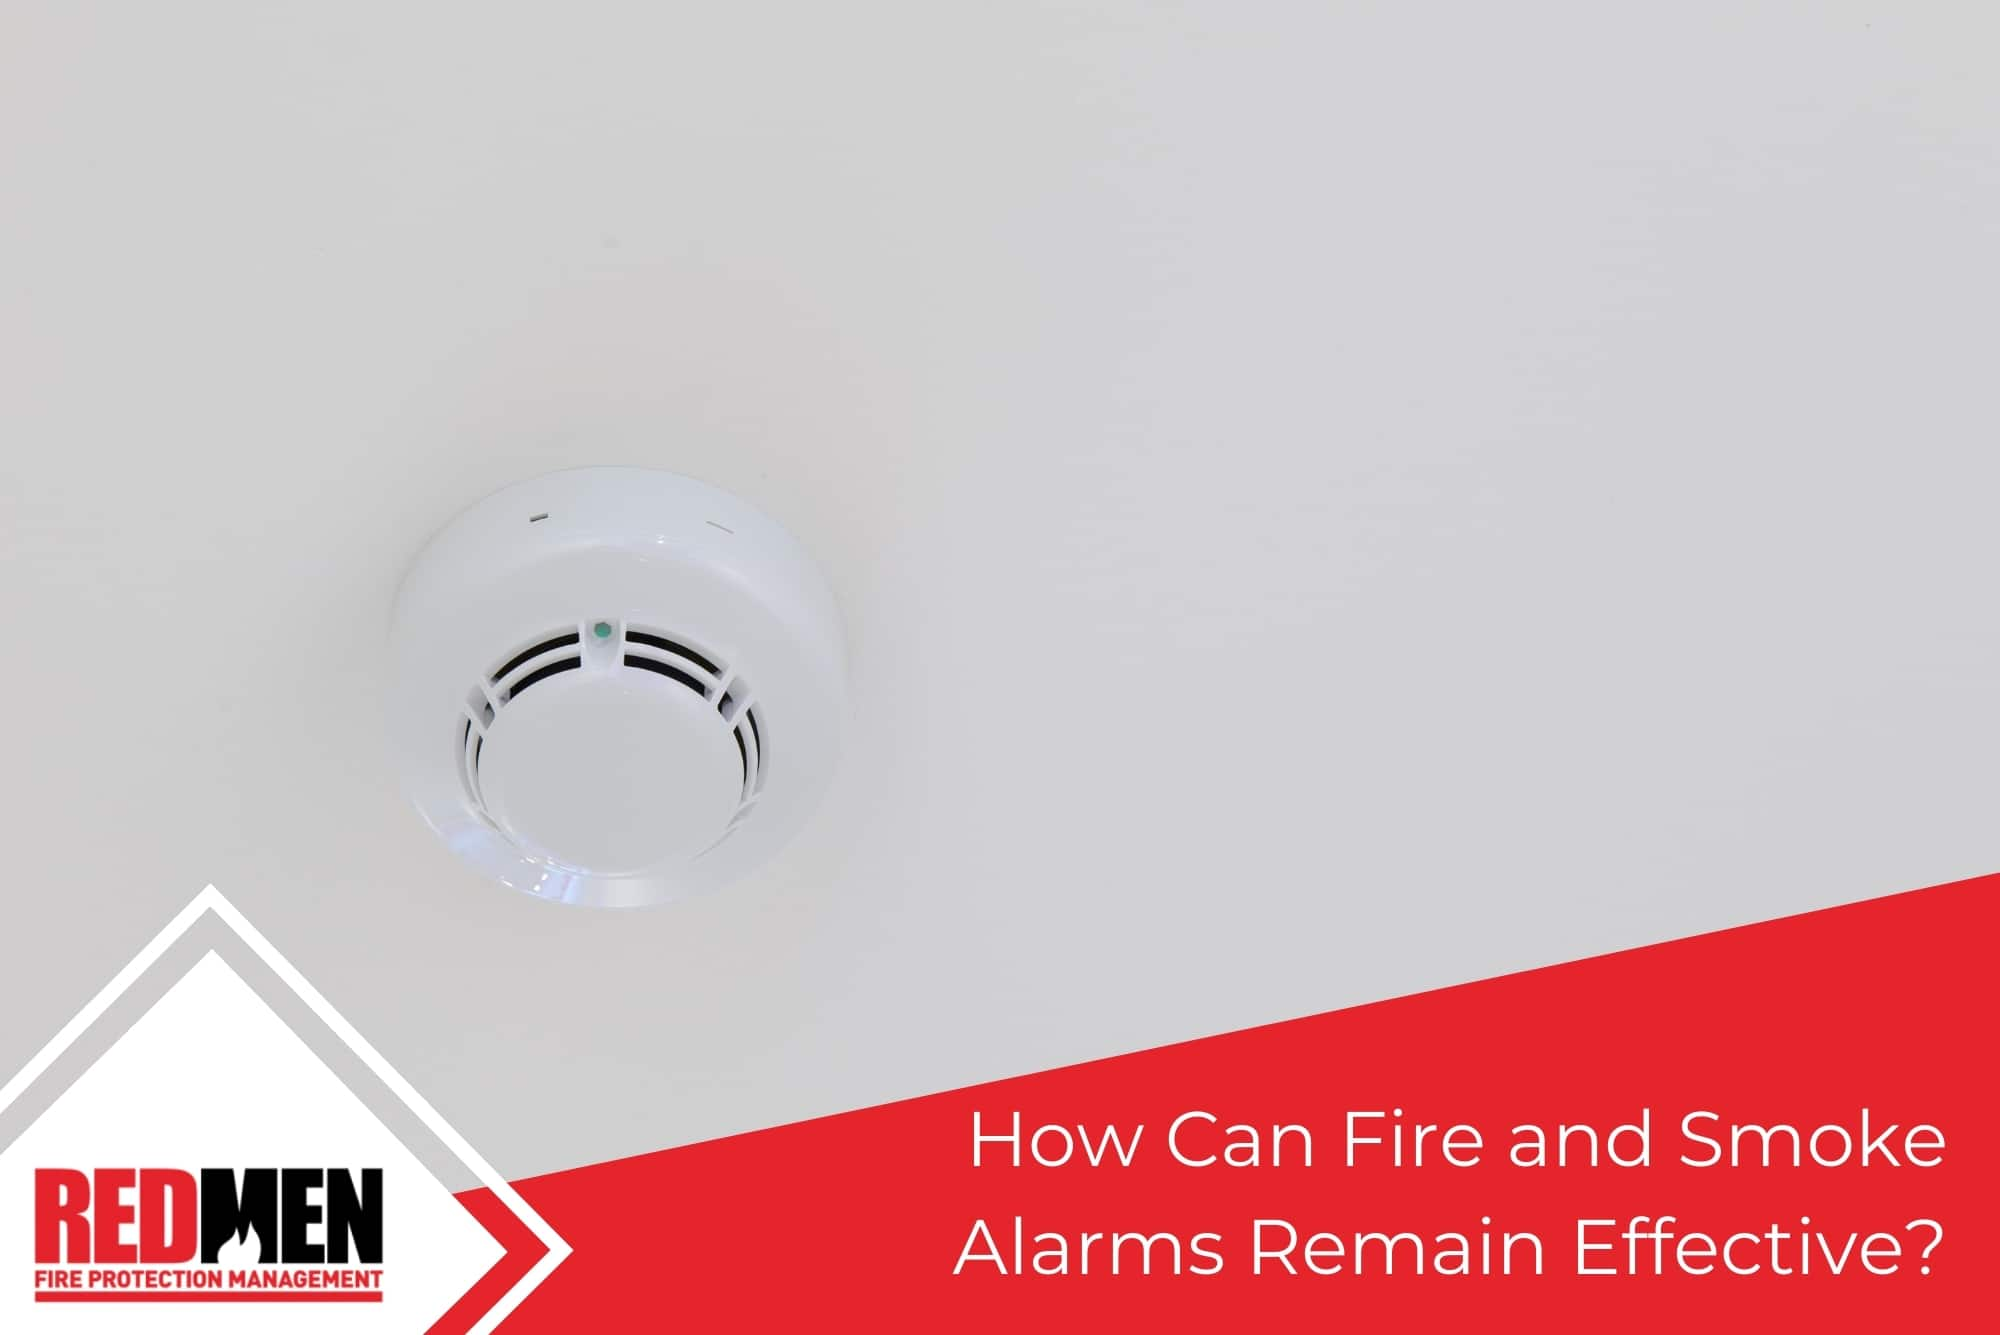 How Can Fire and Smoke Alarms Remain Effective?